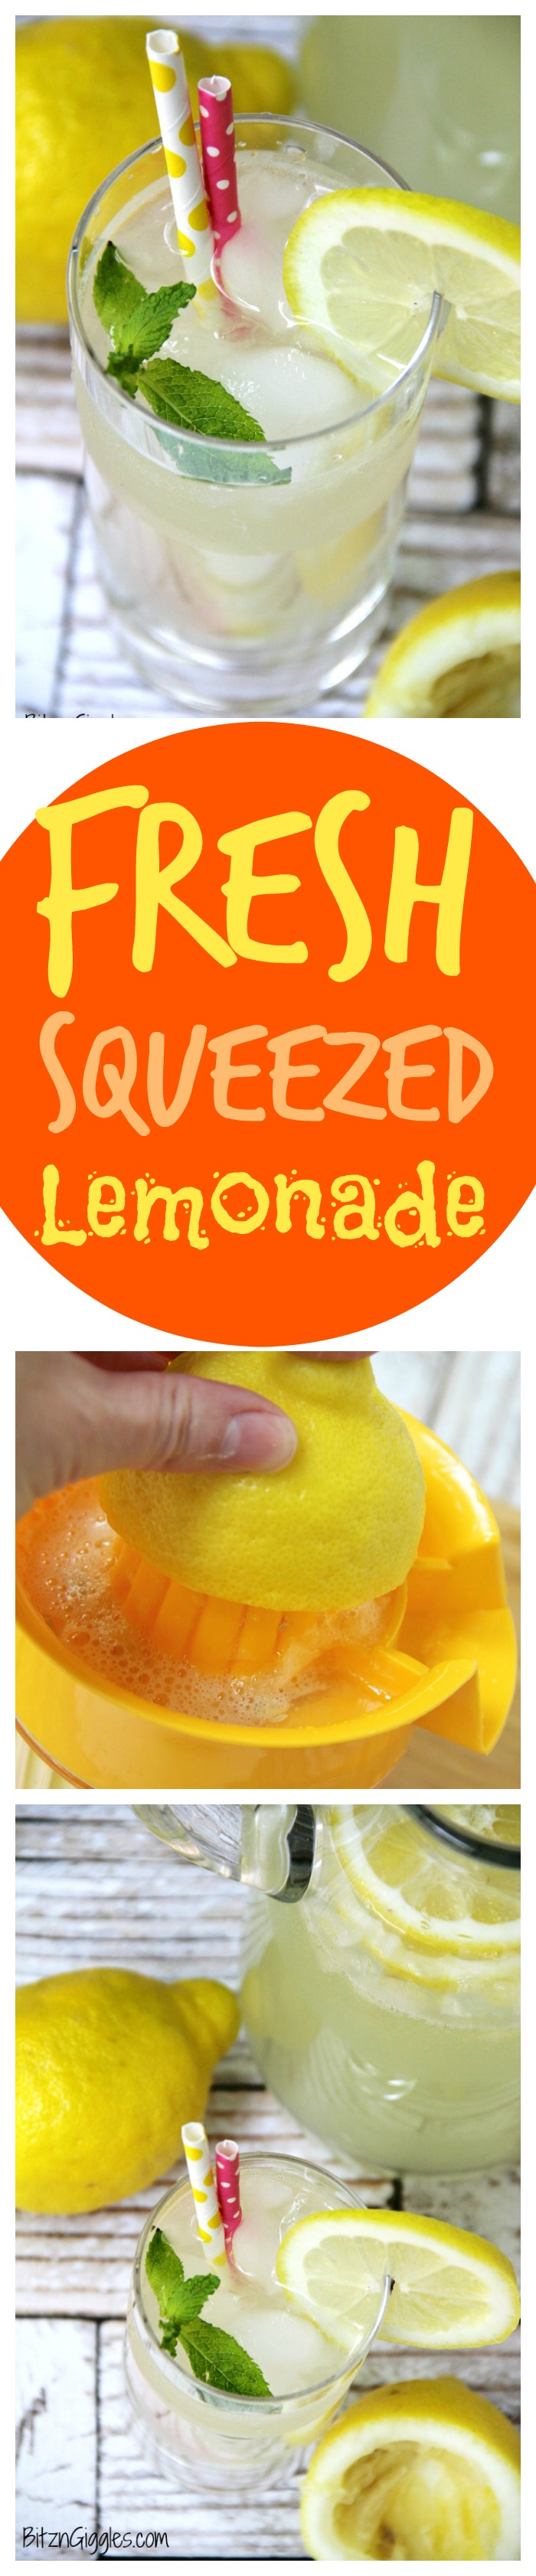 Fresh Squeezed Lemonade - There's nothing like fresh squeezed lemonade! This simple recipe comes together in no time at all and produces delicious results. It reminds me of the wonderful lemonade I get at our hometown fair!